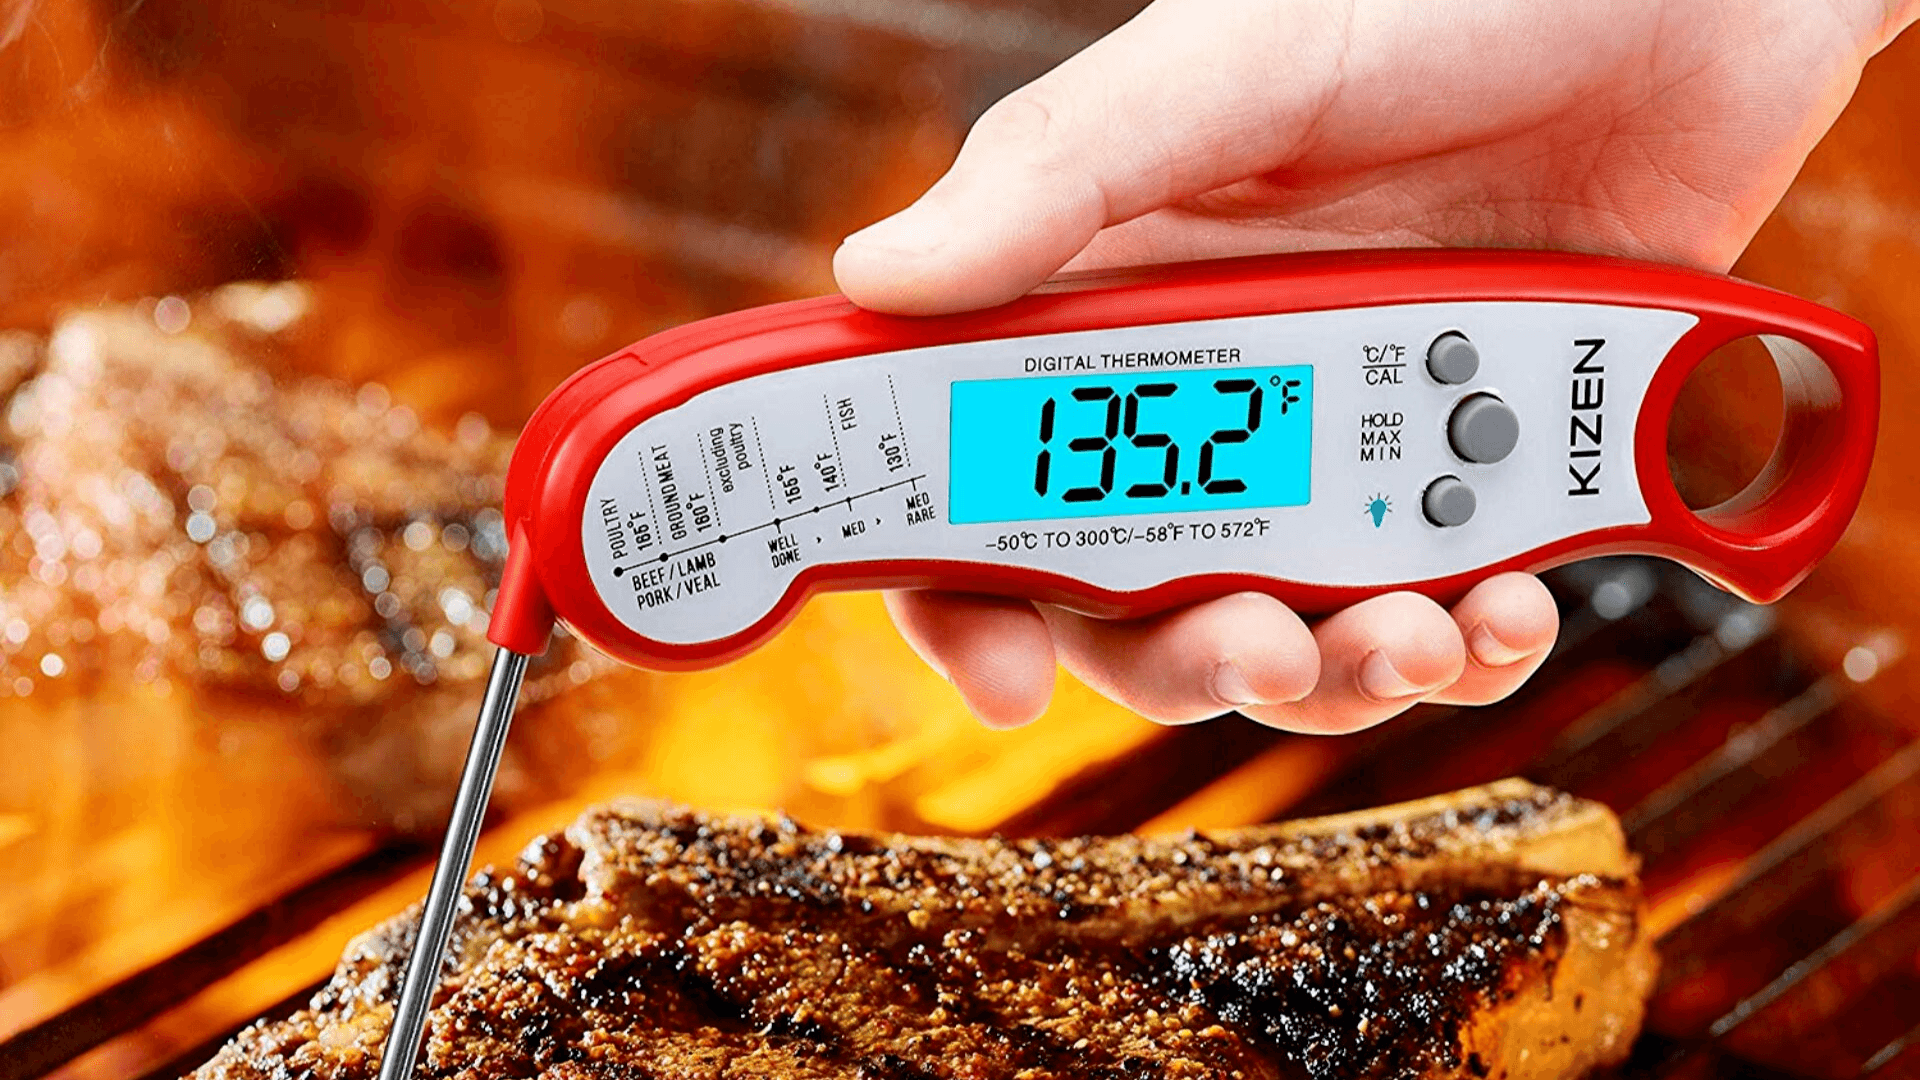 Picture of Kizen Digital Food Thermometer being used for steak